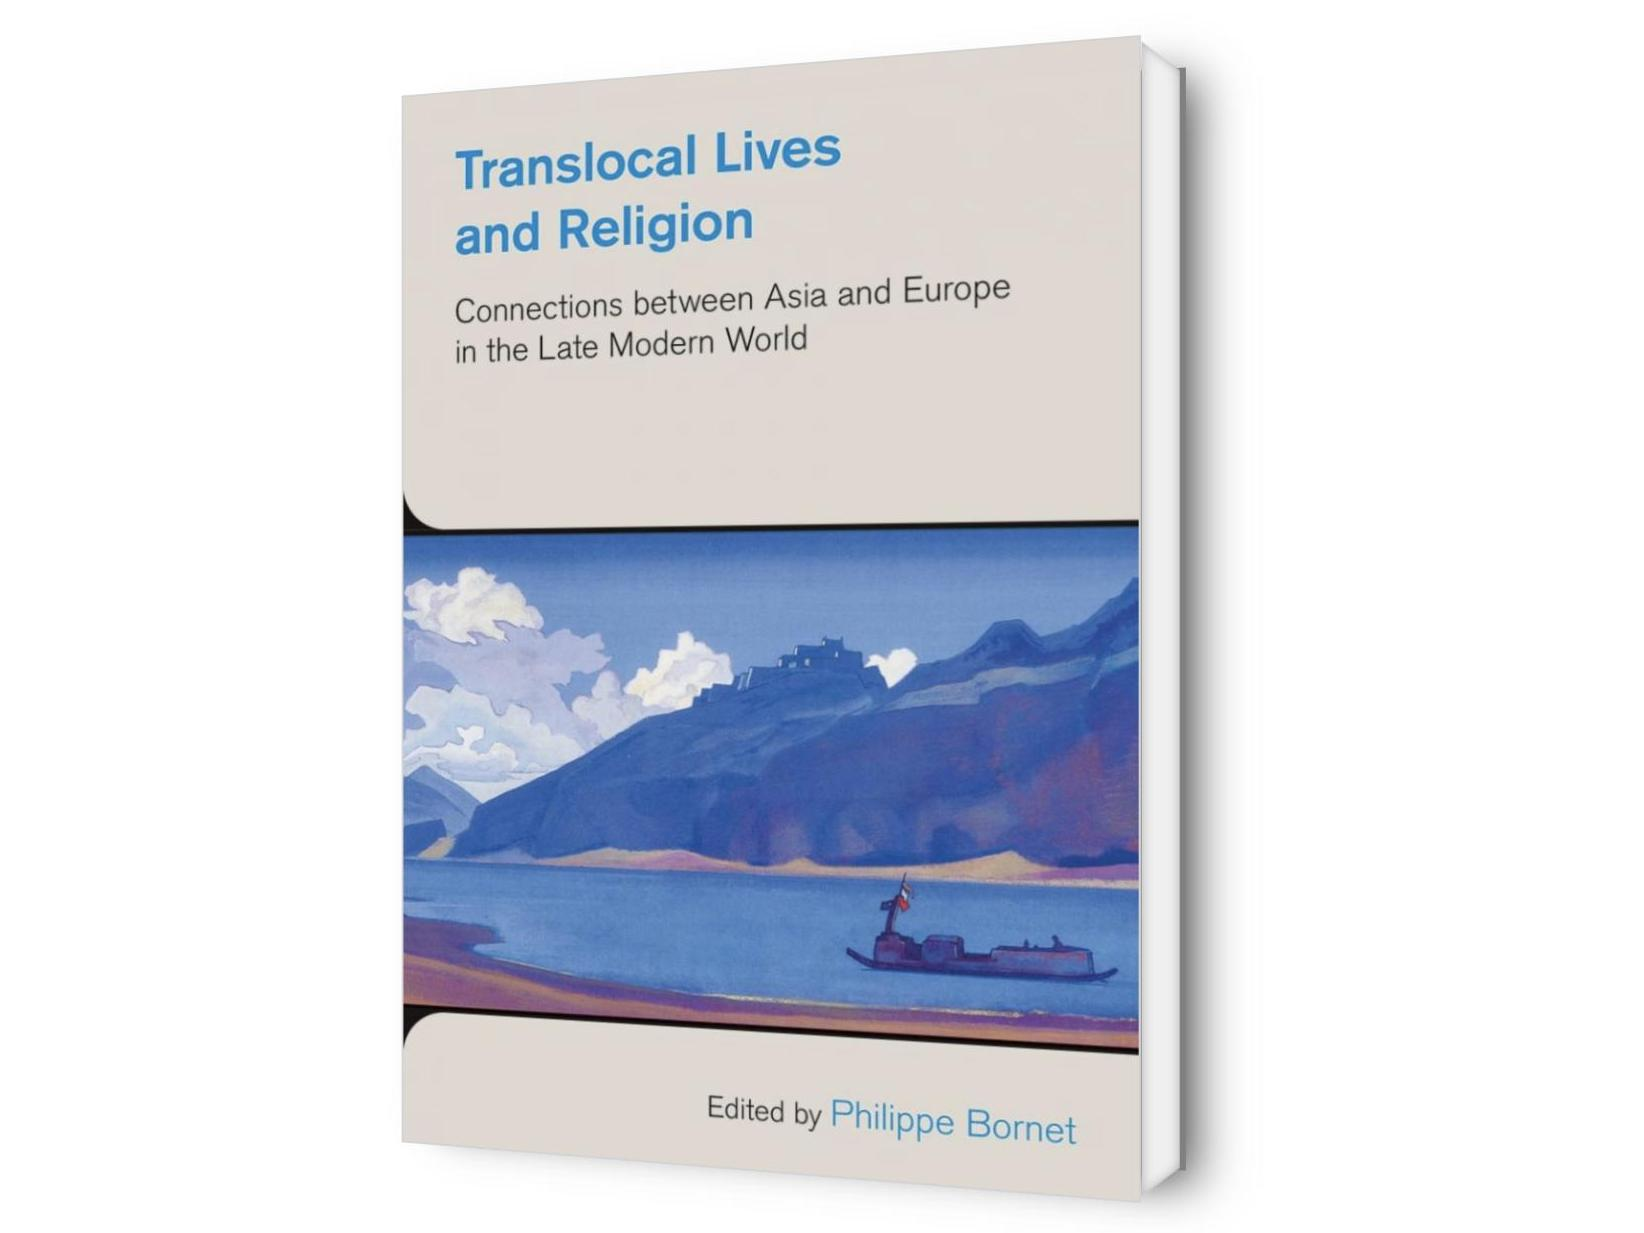 Translocal Lives and Religion. Connections between Asia and Europe in the Late Modern World.